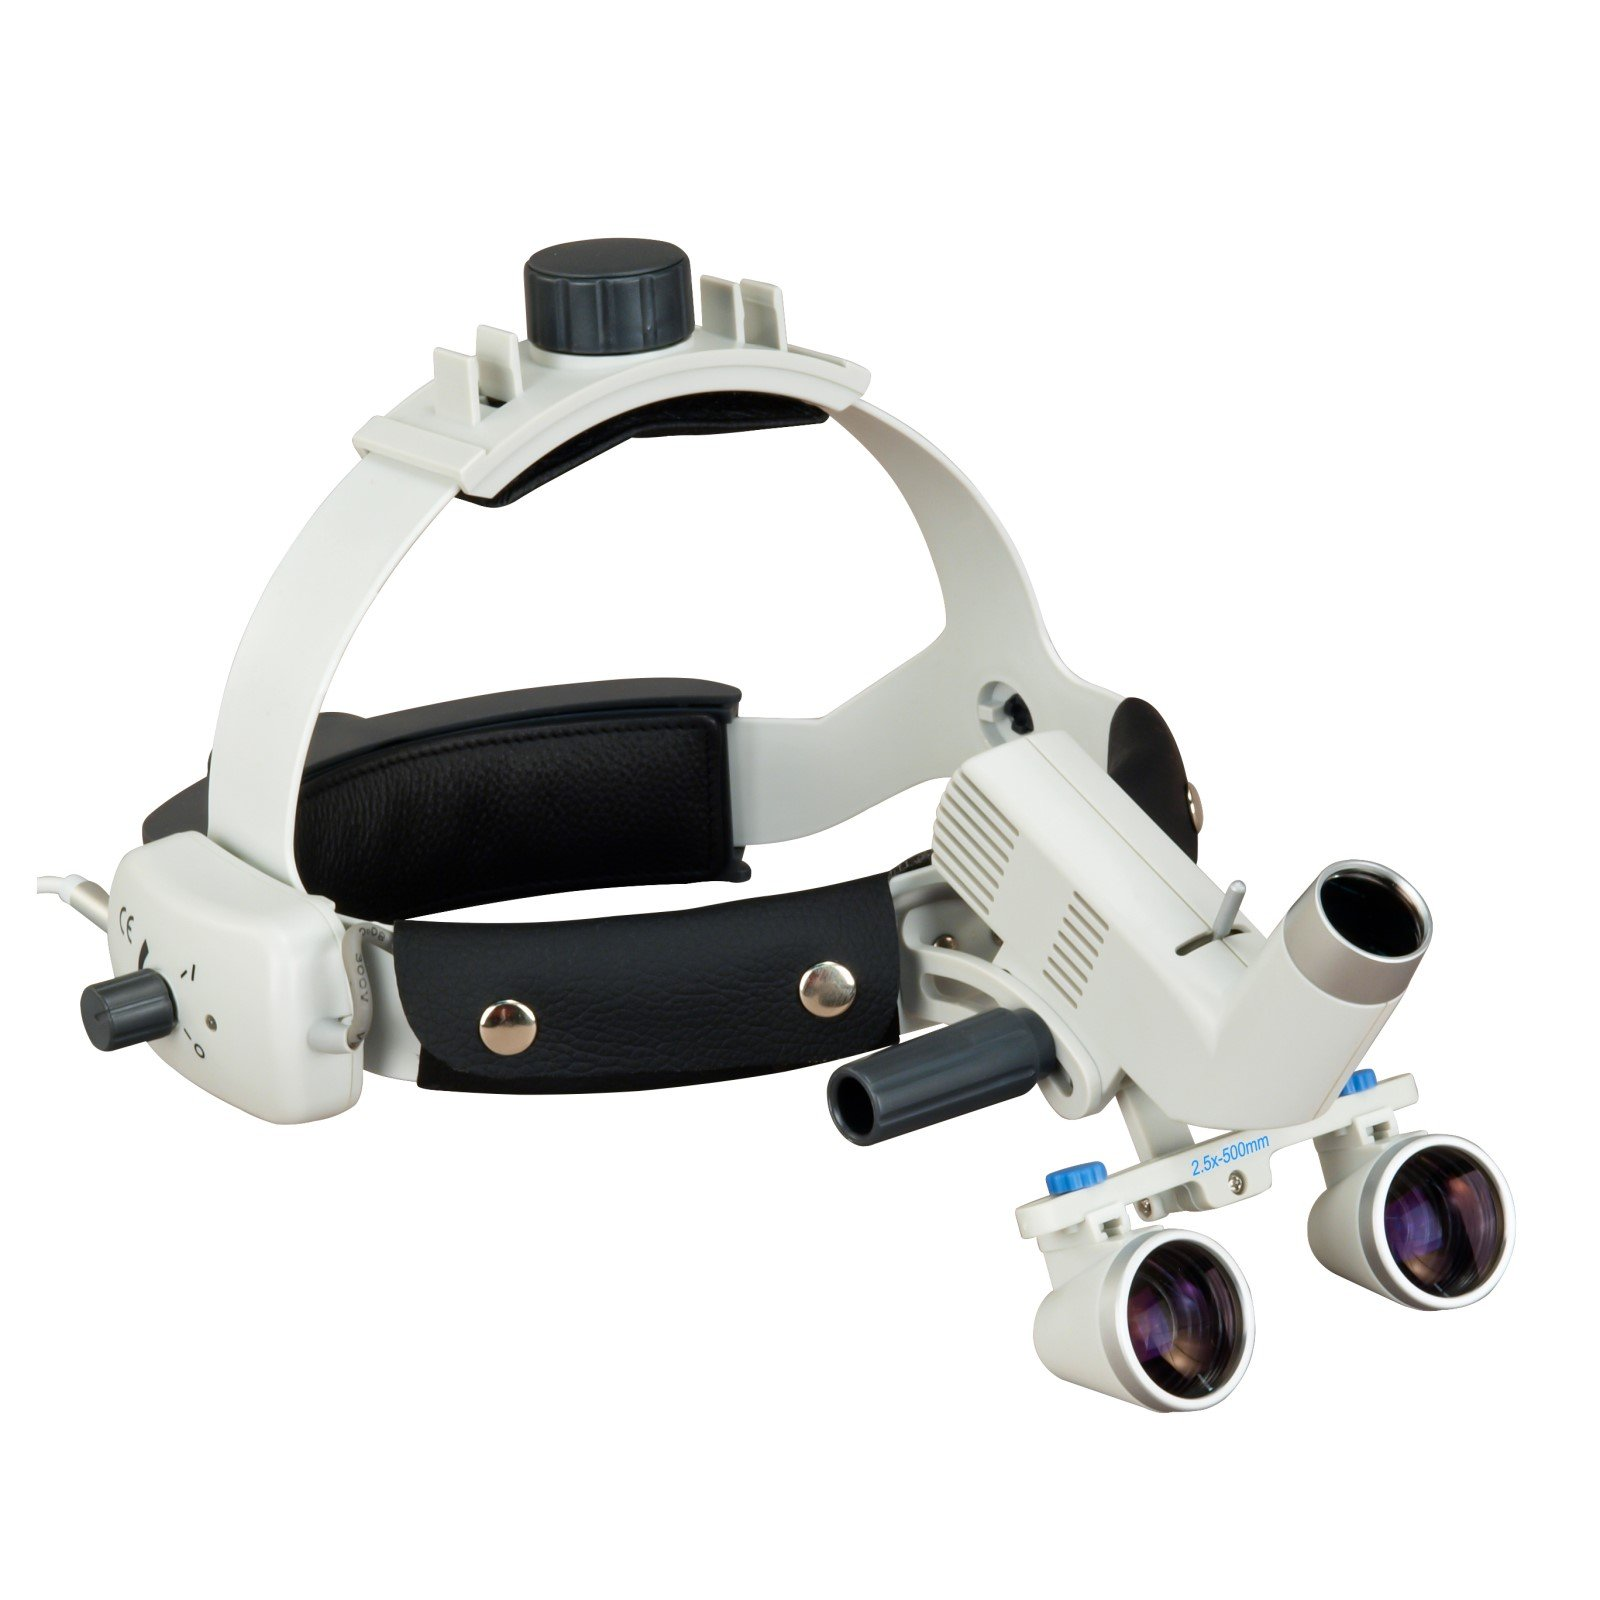 Headband Dental Surgical Loupes with LED Headlight, 2.5x , 500mm working distance